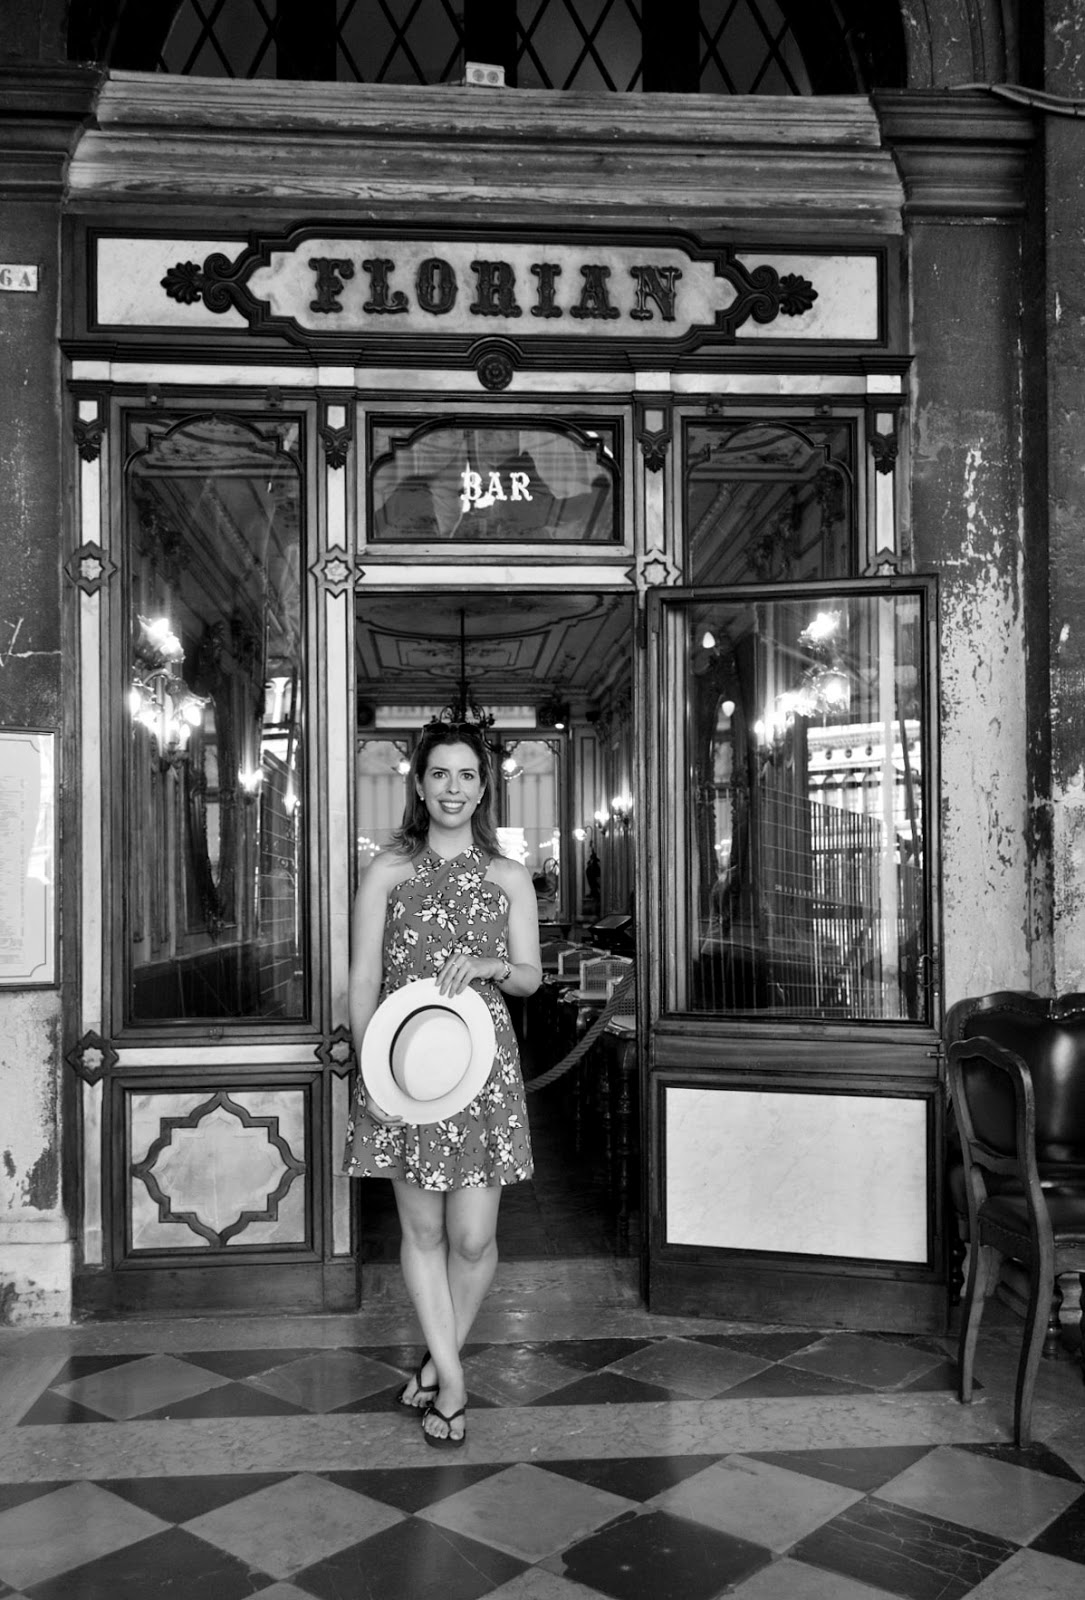 cafe florian piazza san marco venice italy